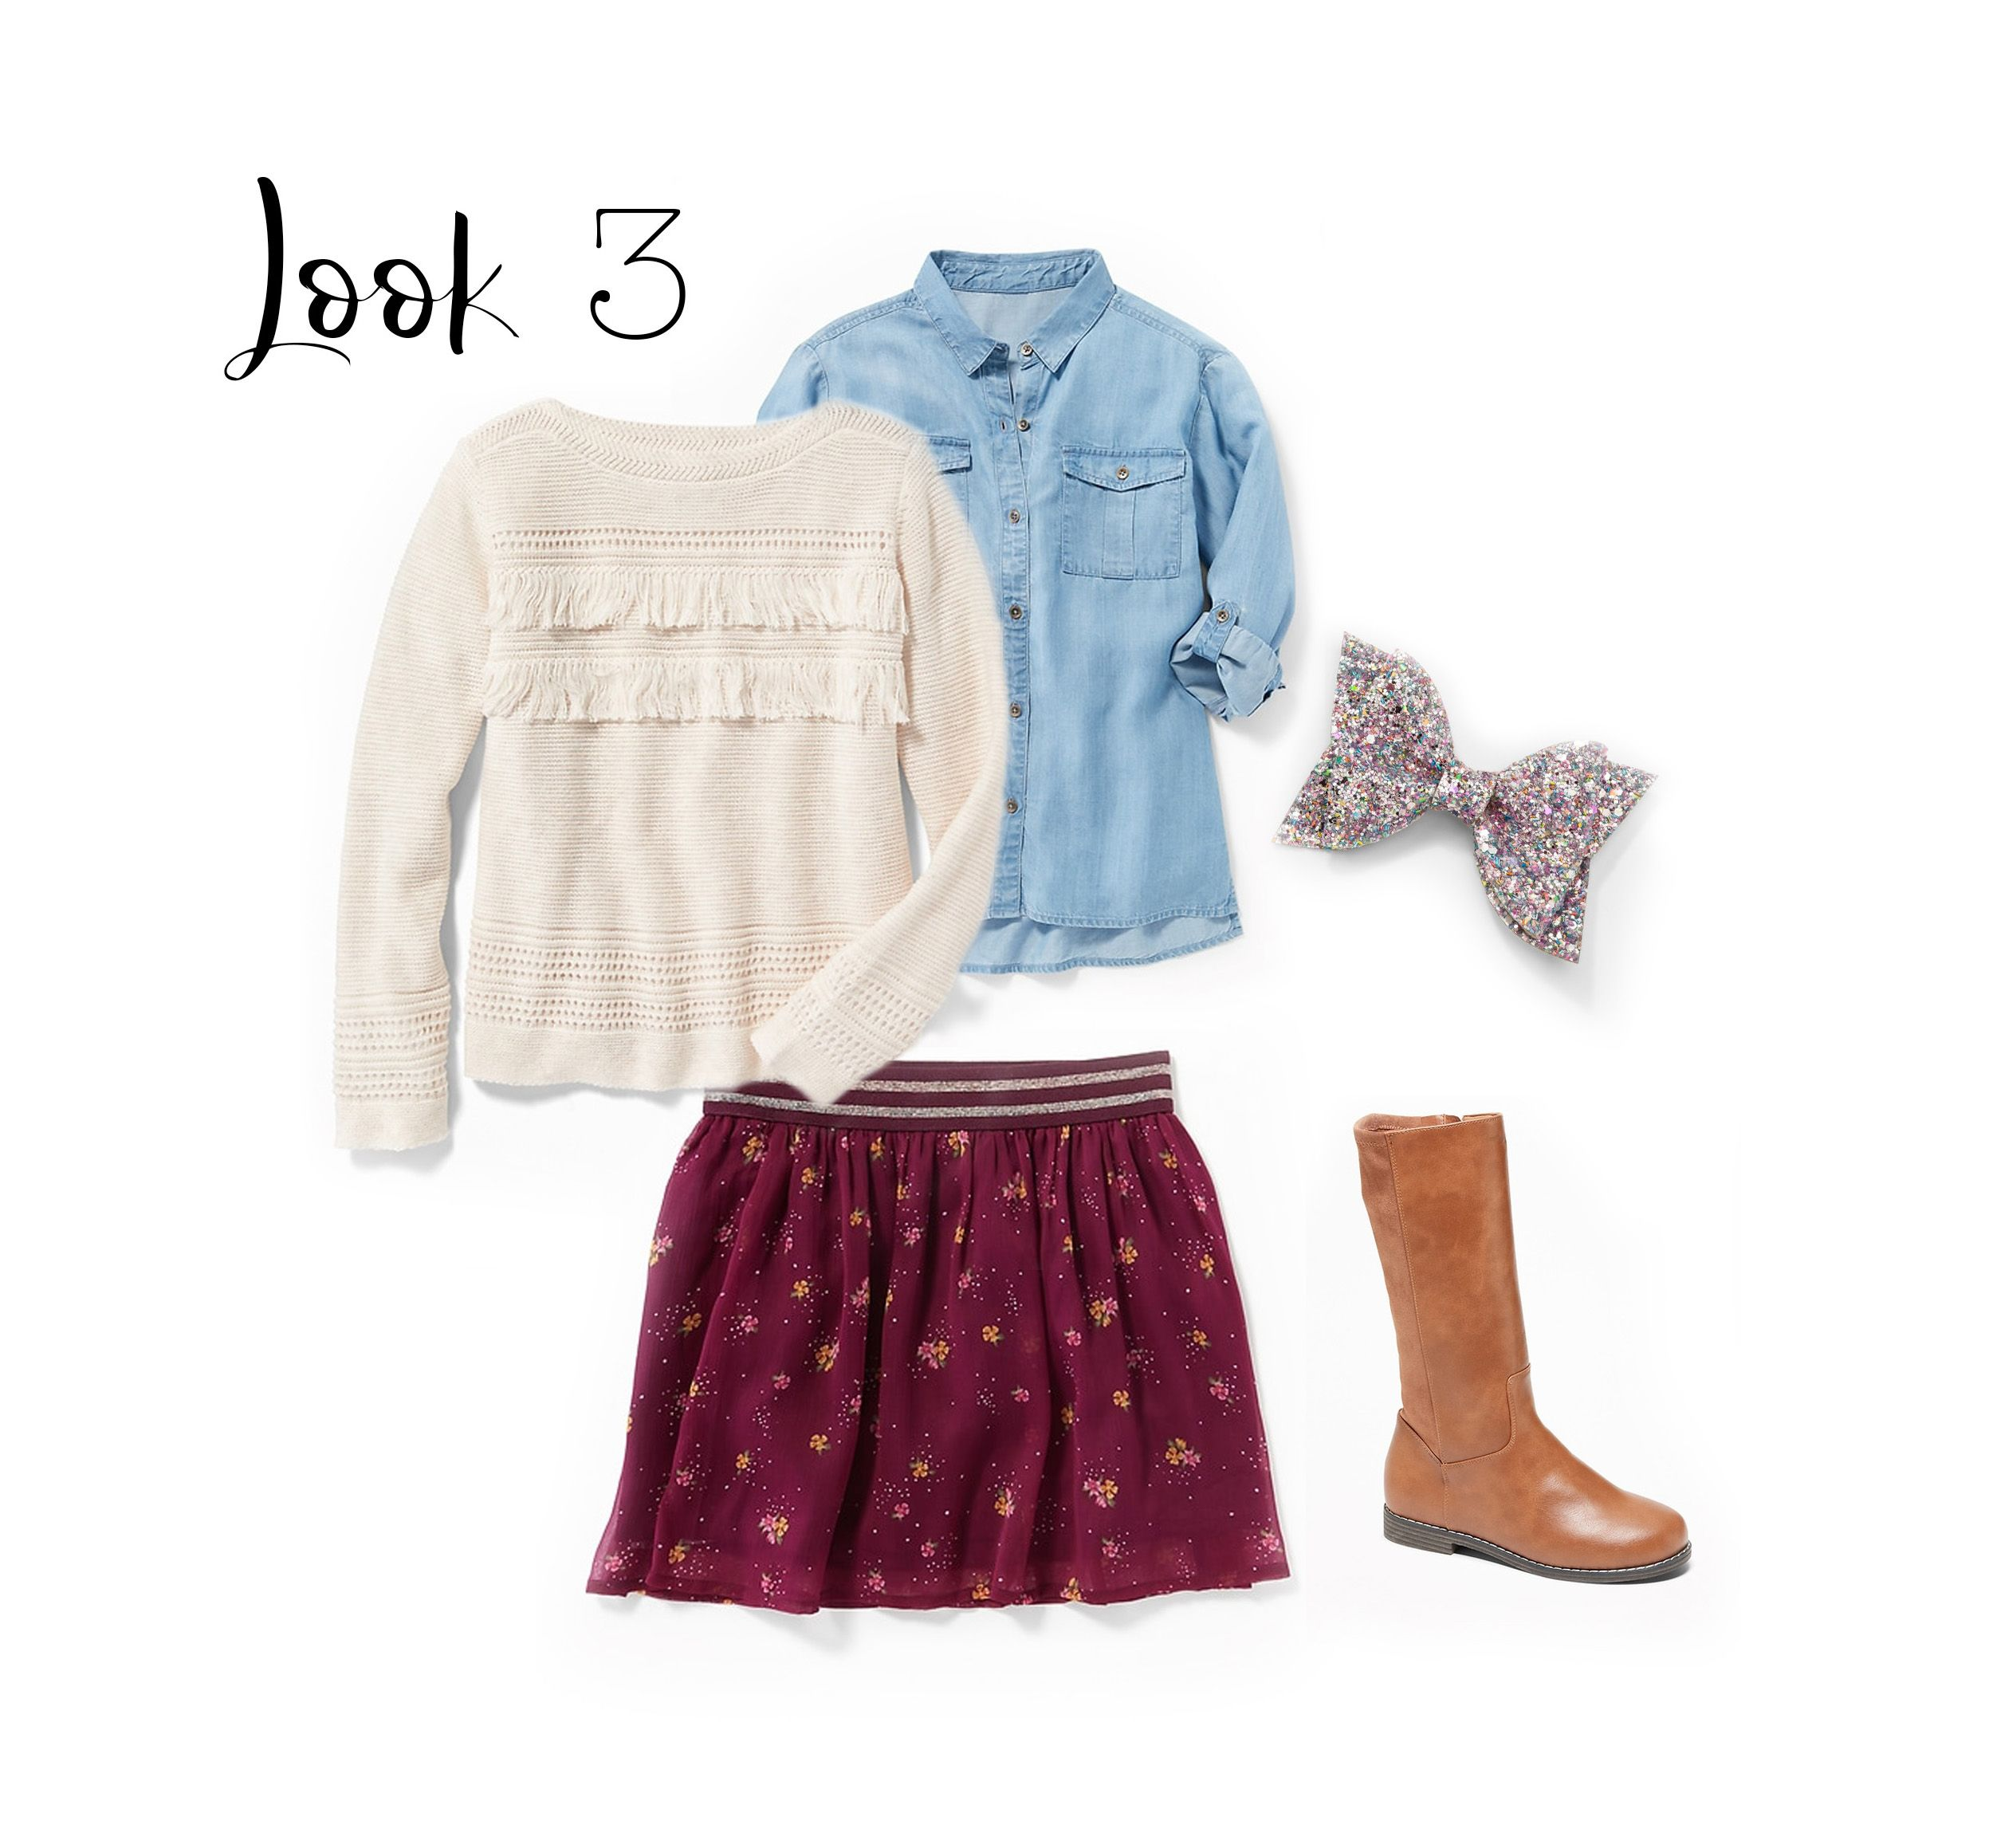 abb448d1cd Fall styles for girls from Target and Old Navy Click here for tons of fun  style boards for girls fall outfits